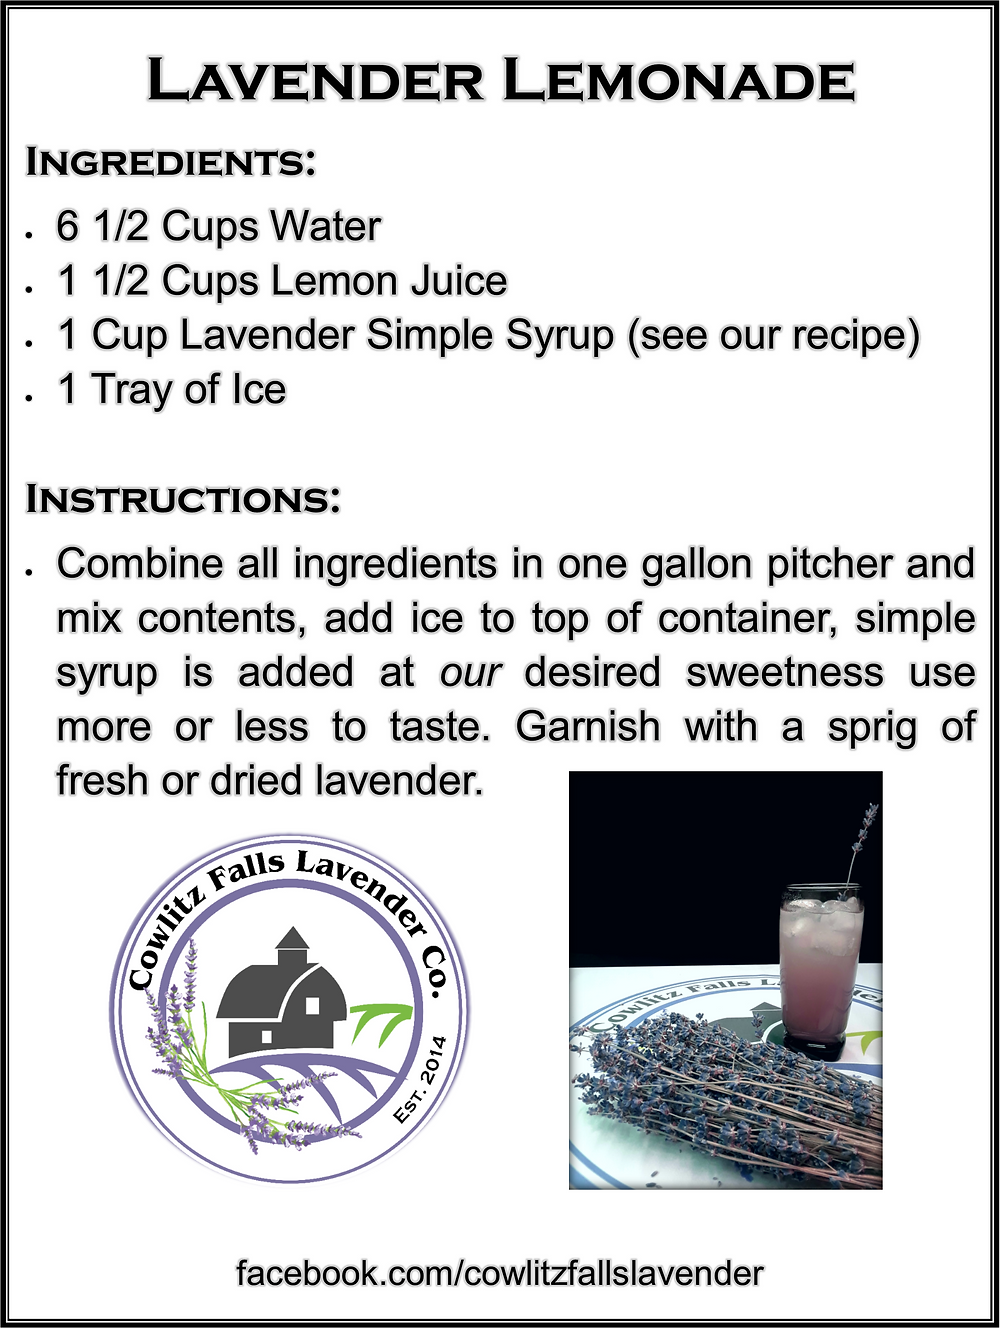 Use this recipe to duplicate the taste of Debbie's lemonade recipe here at Cowlitz Falls Lavender Co.